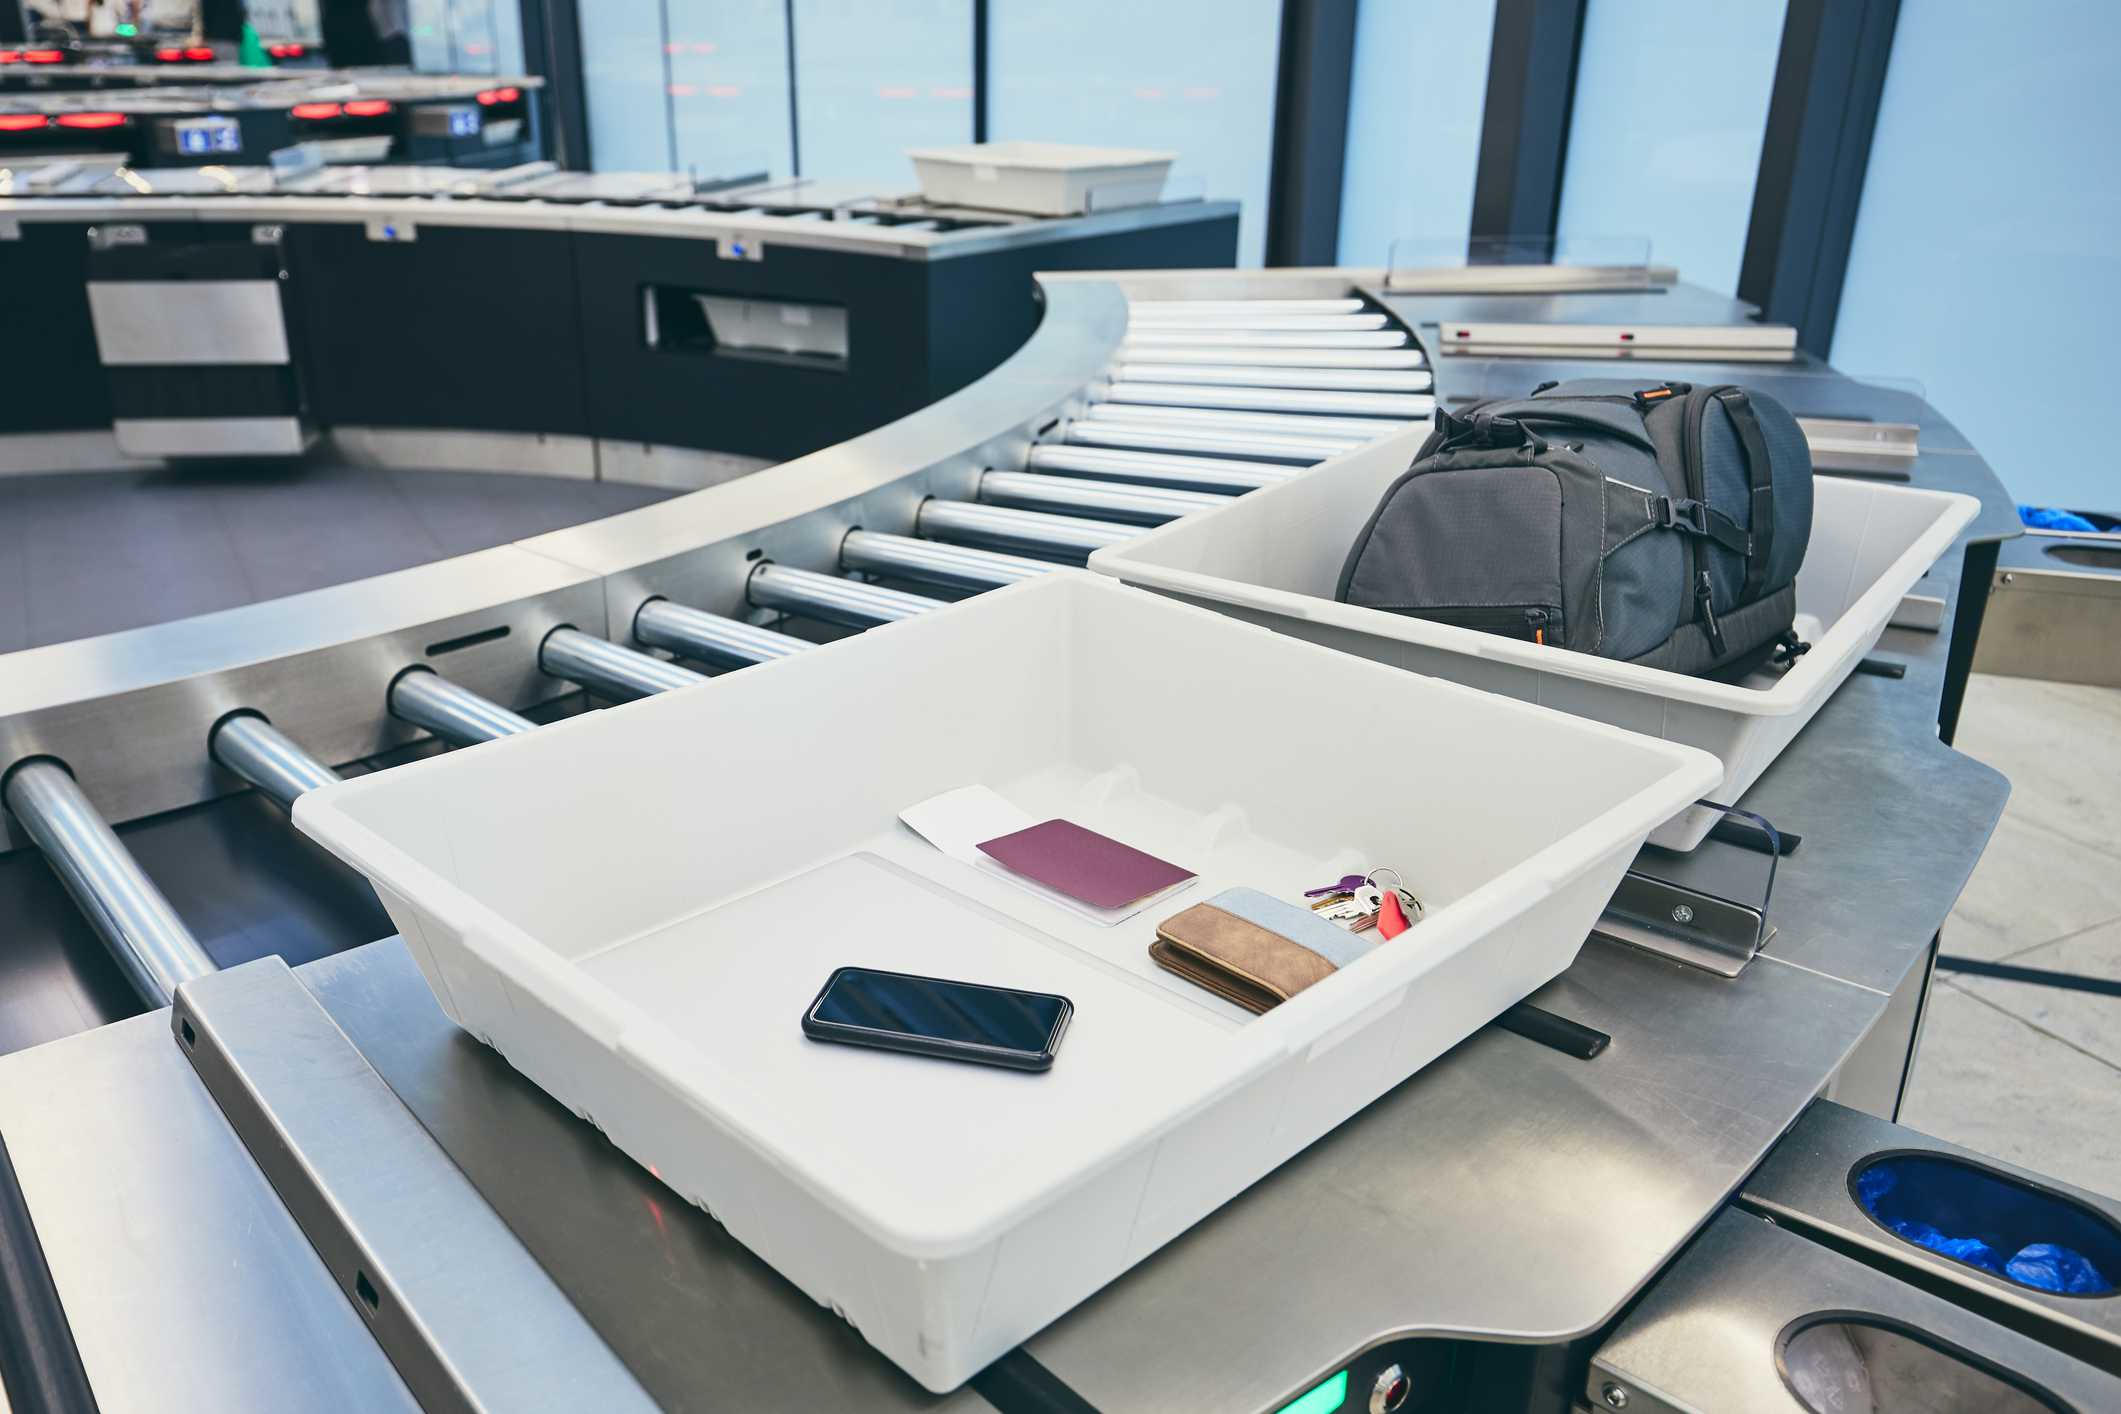 Security baggage screening at the airport